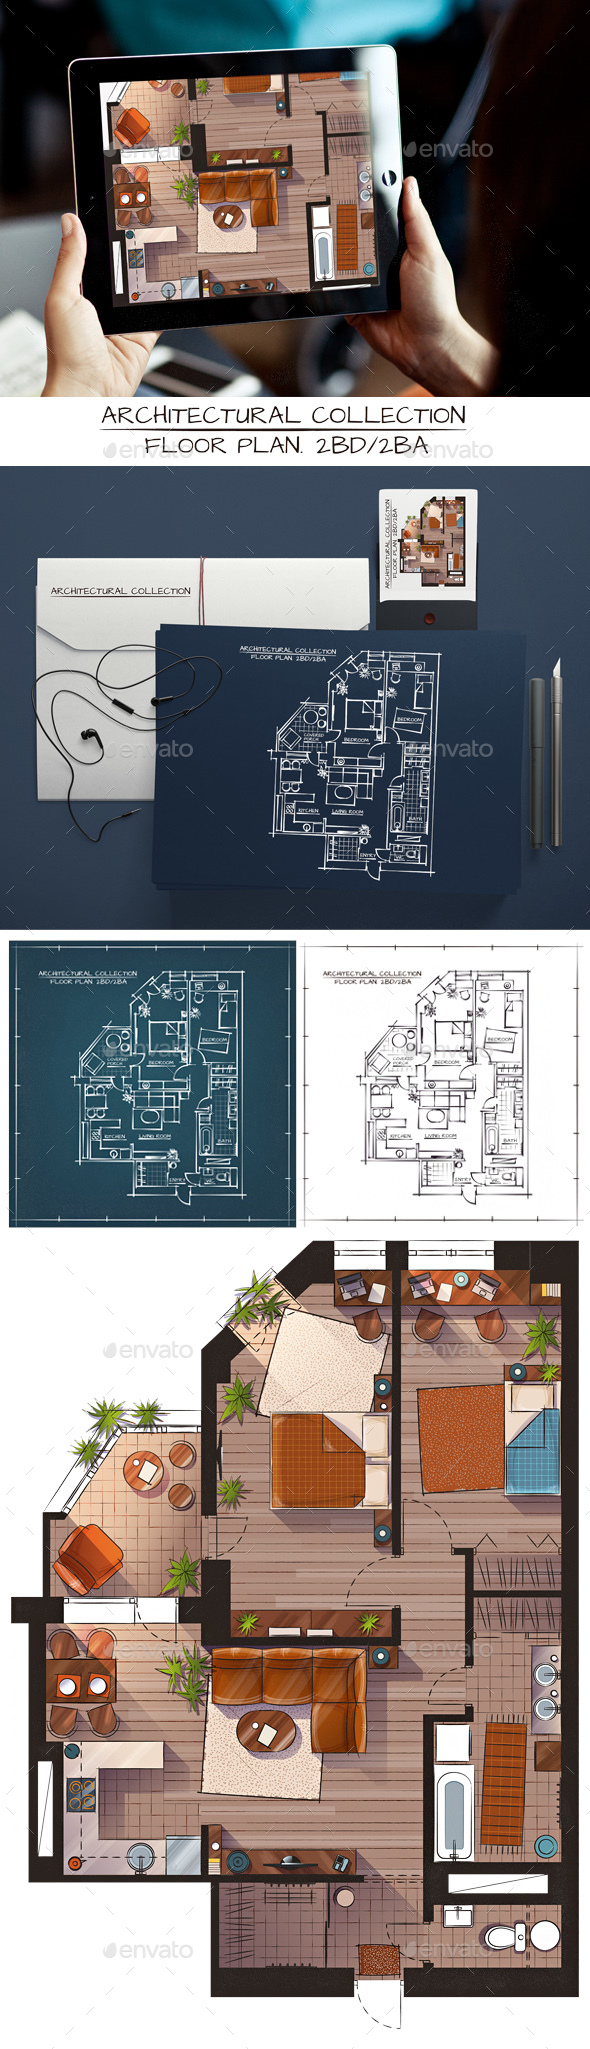 Architectural Sketch Color Floor Plan - Backgrounds Decorative